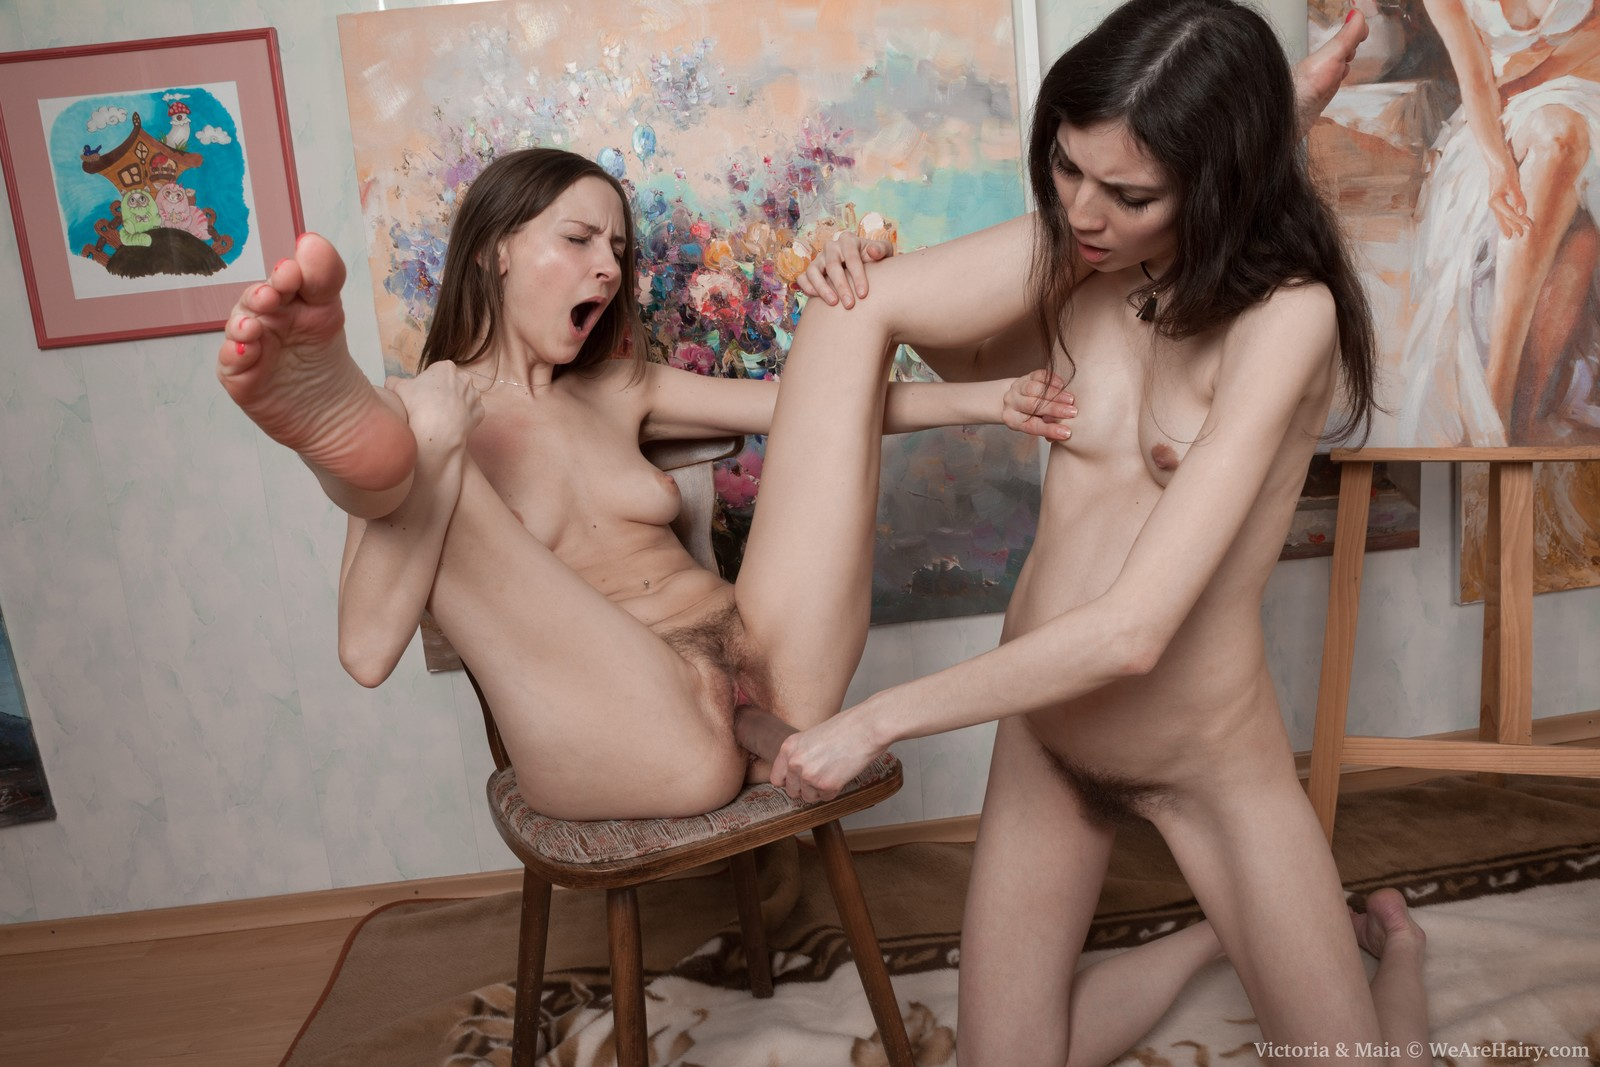 victoria-and-maia-have-hot-lesbian-sex-with-toys10.jpg